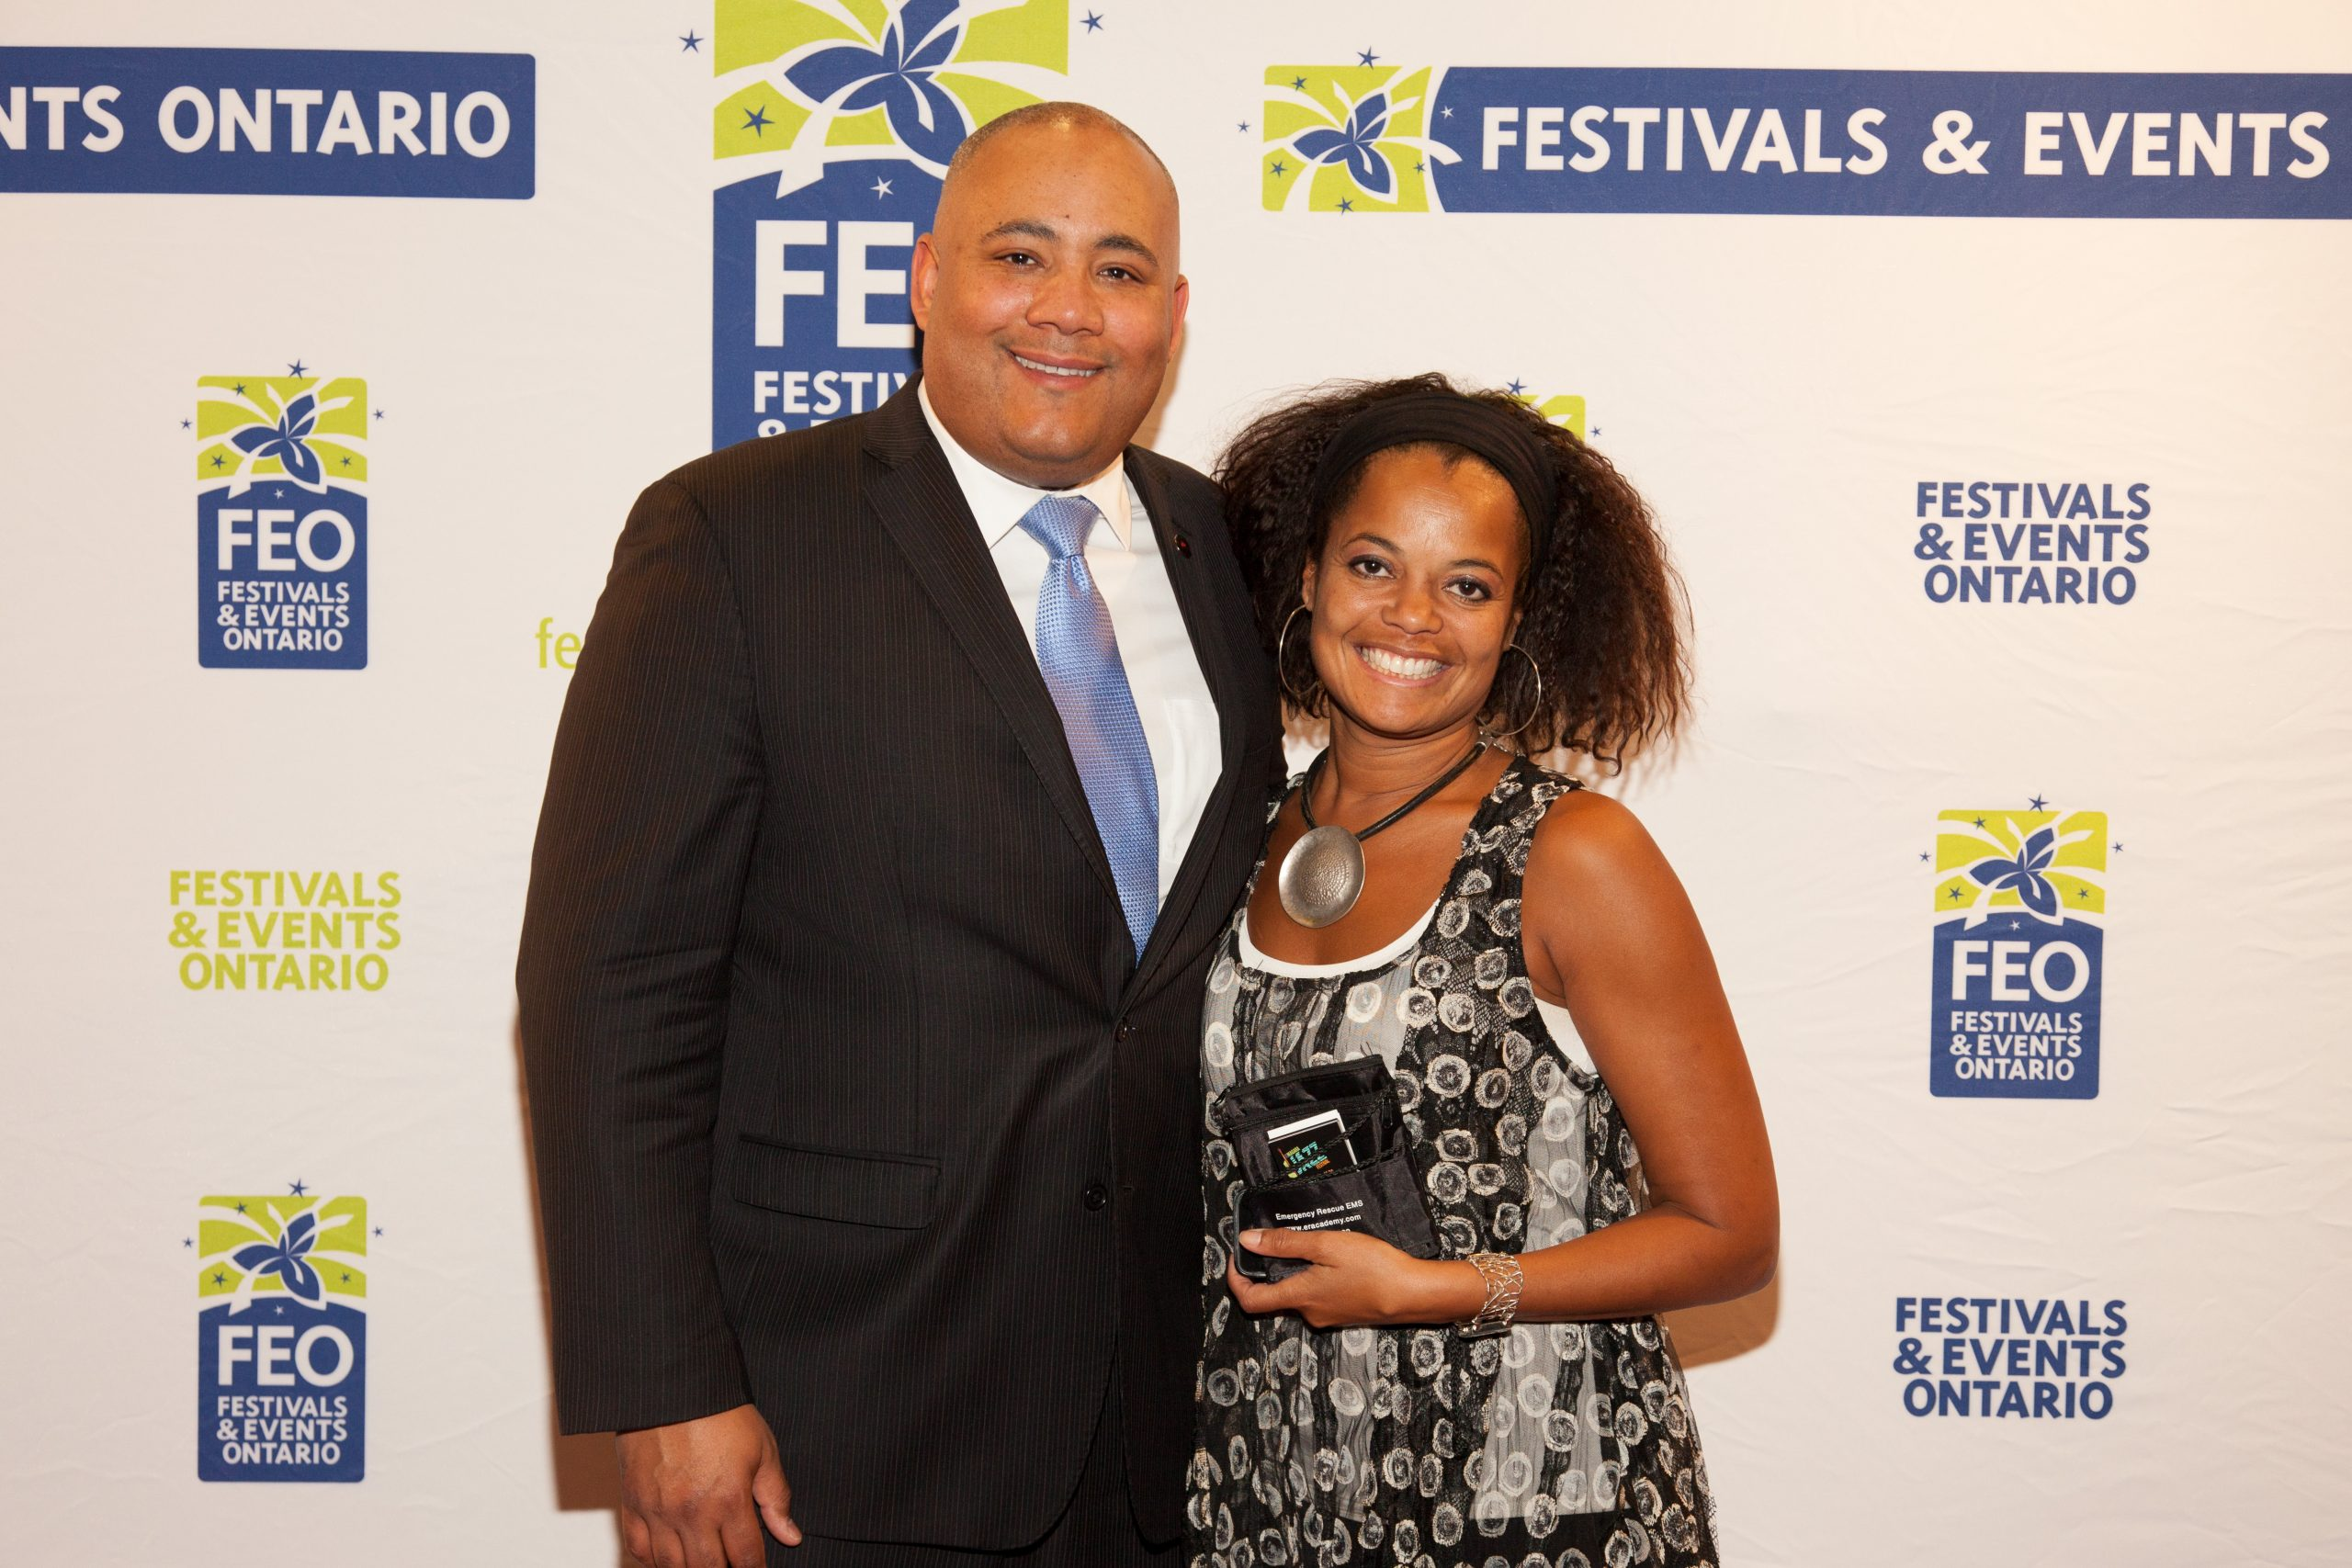 Festivals and Events Conference - February 2015: Juliet Dunn (ED) with Minister Michael Coteau (Minister of Culture, Tourism and Sport